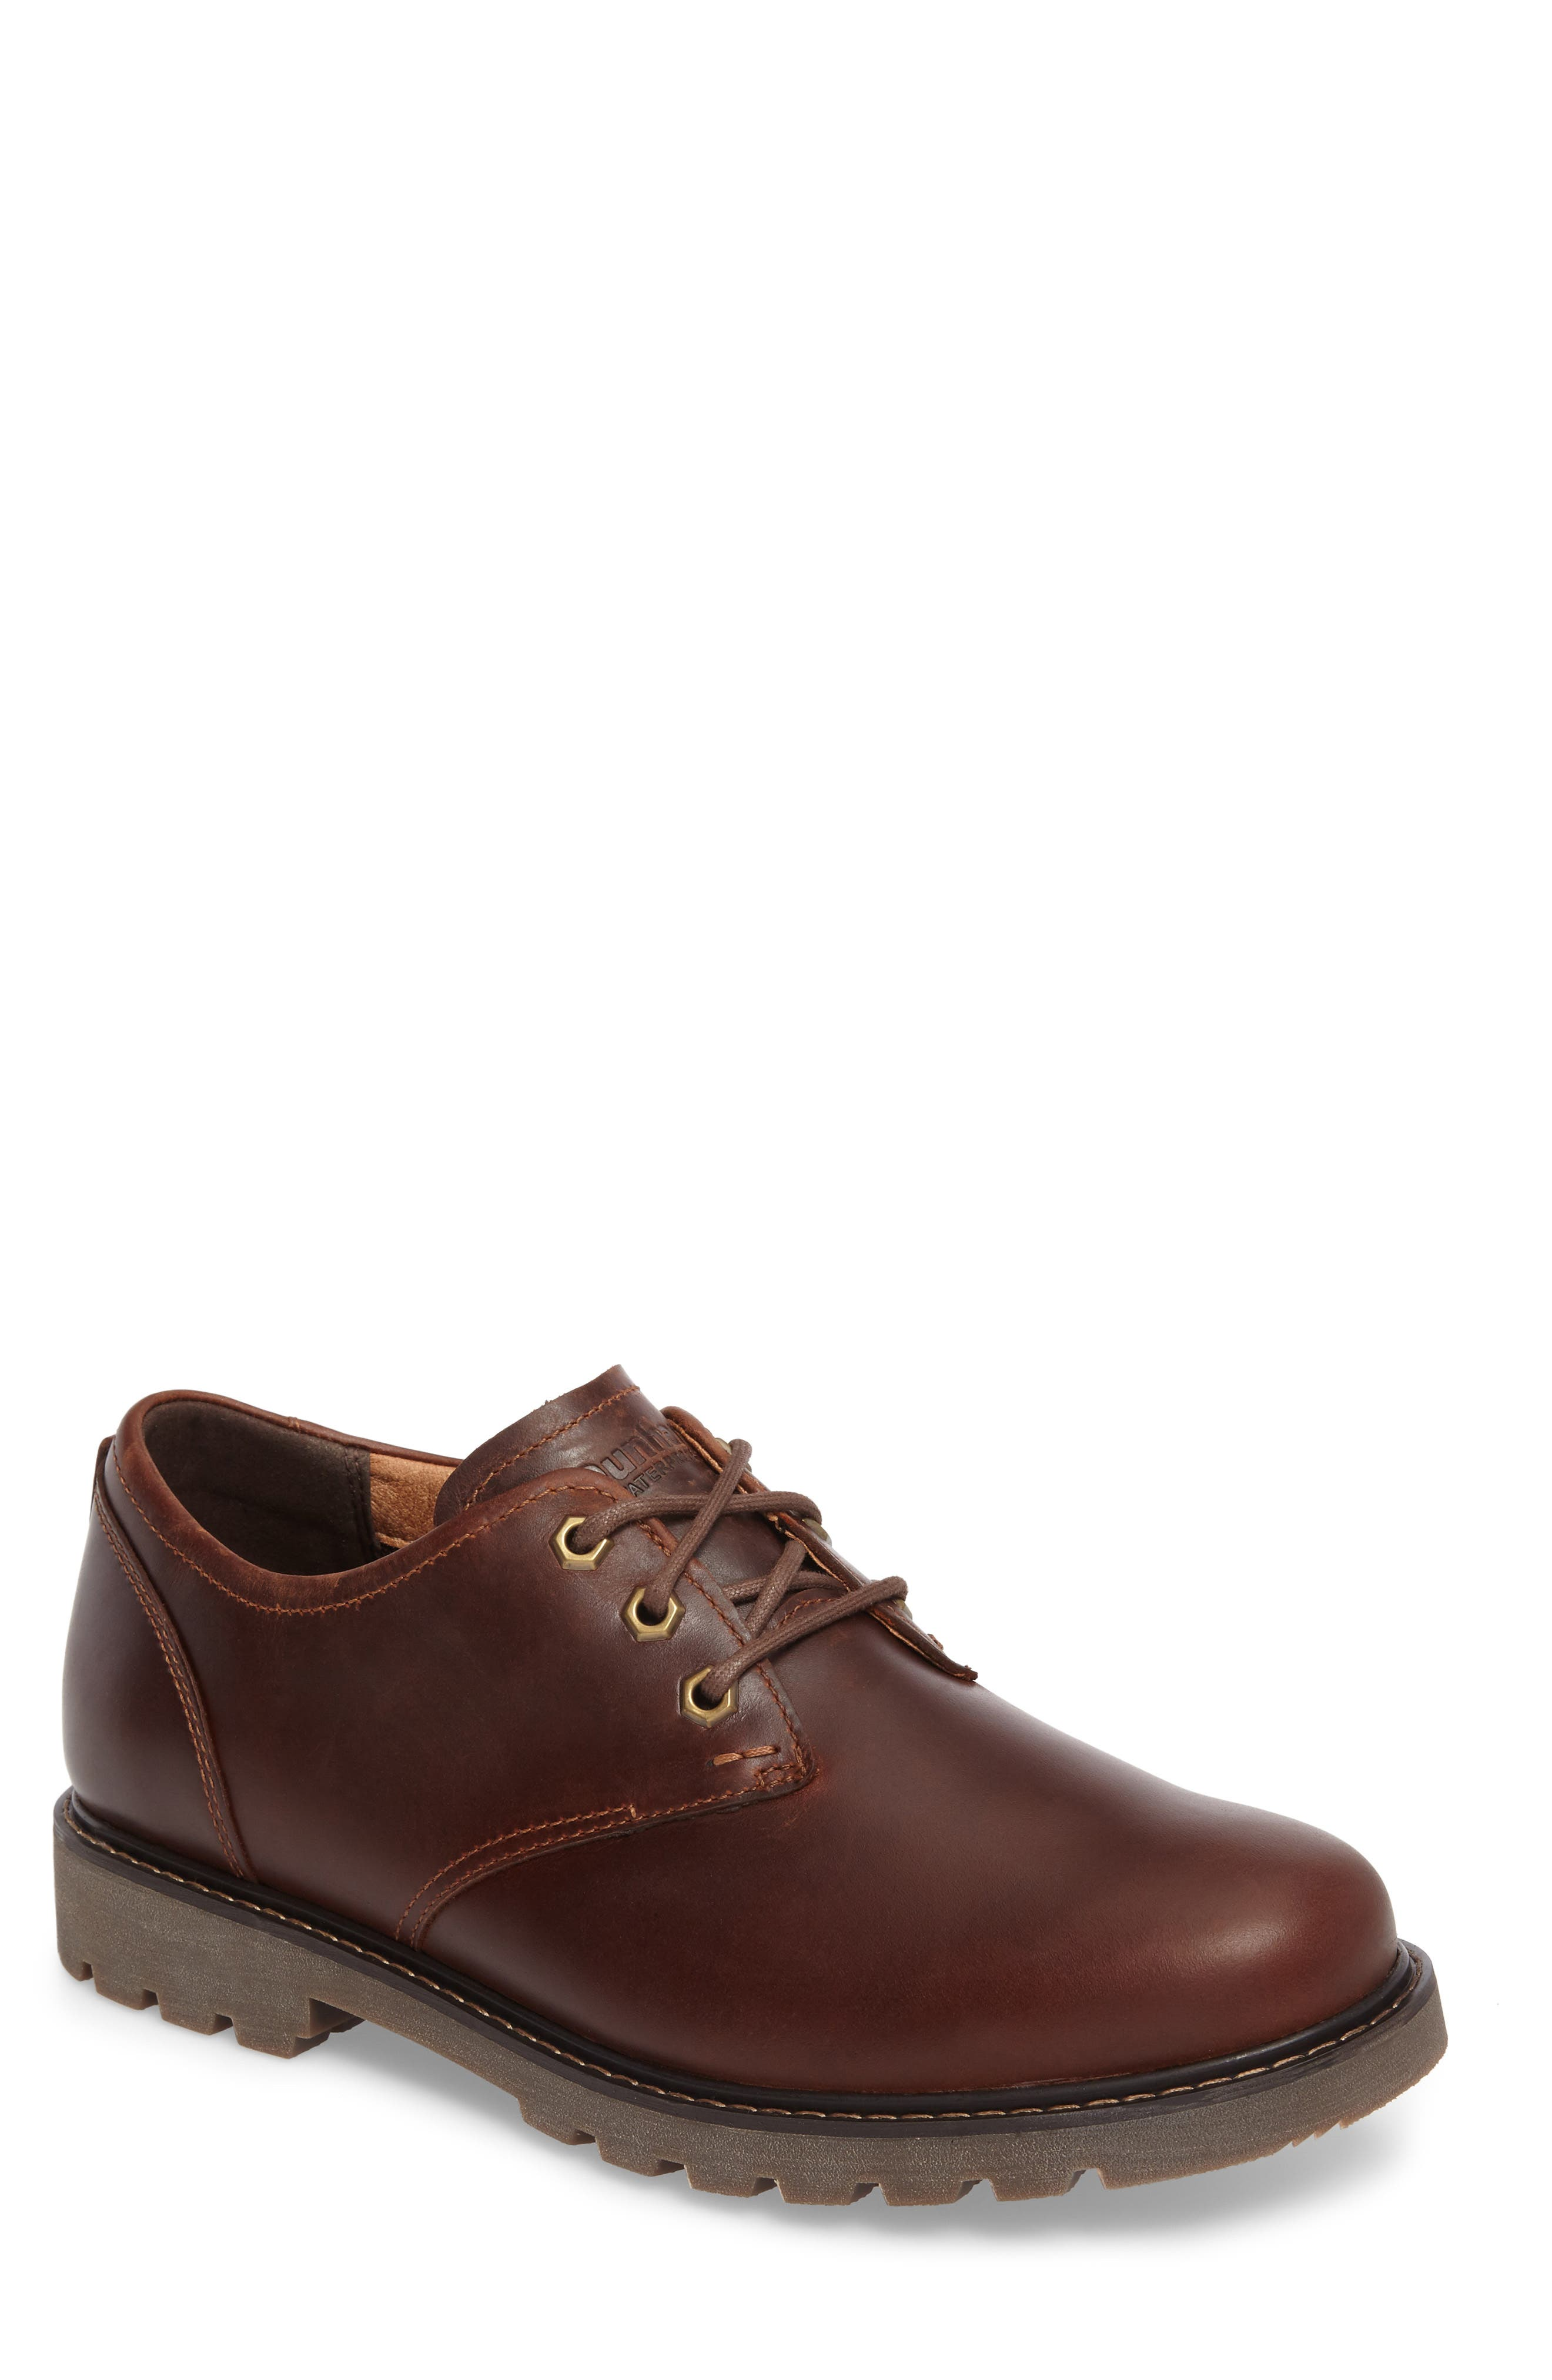 Alternate Image 1 Selected - Dunham Royalton Plain Toe Derby (Men)